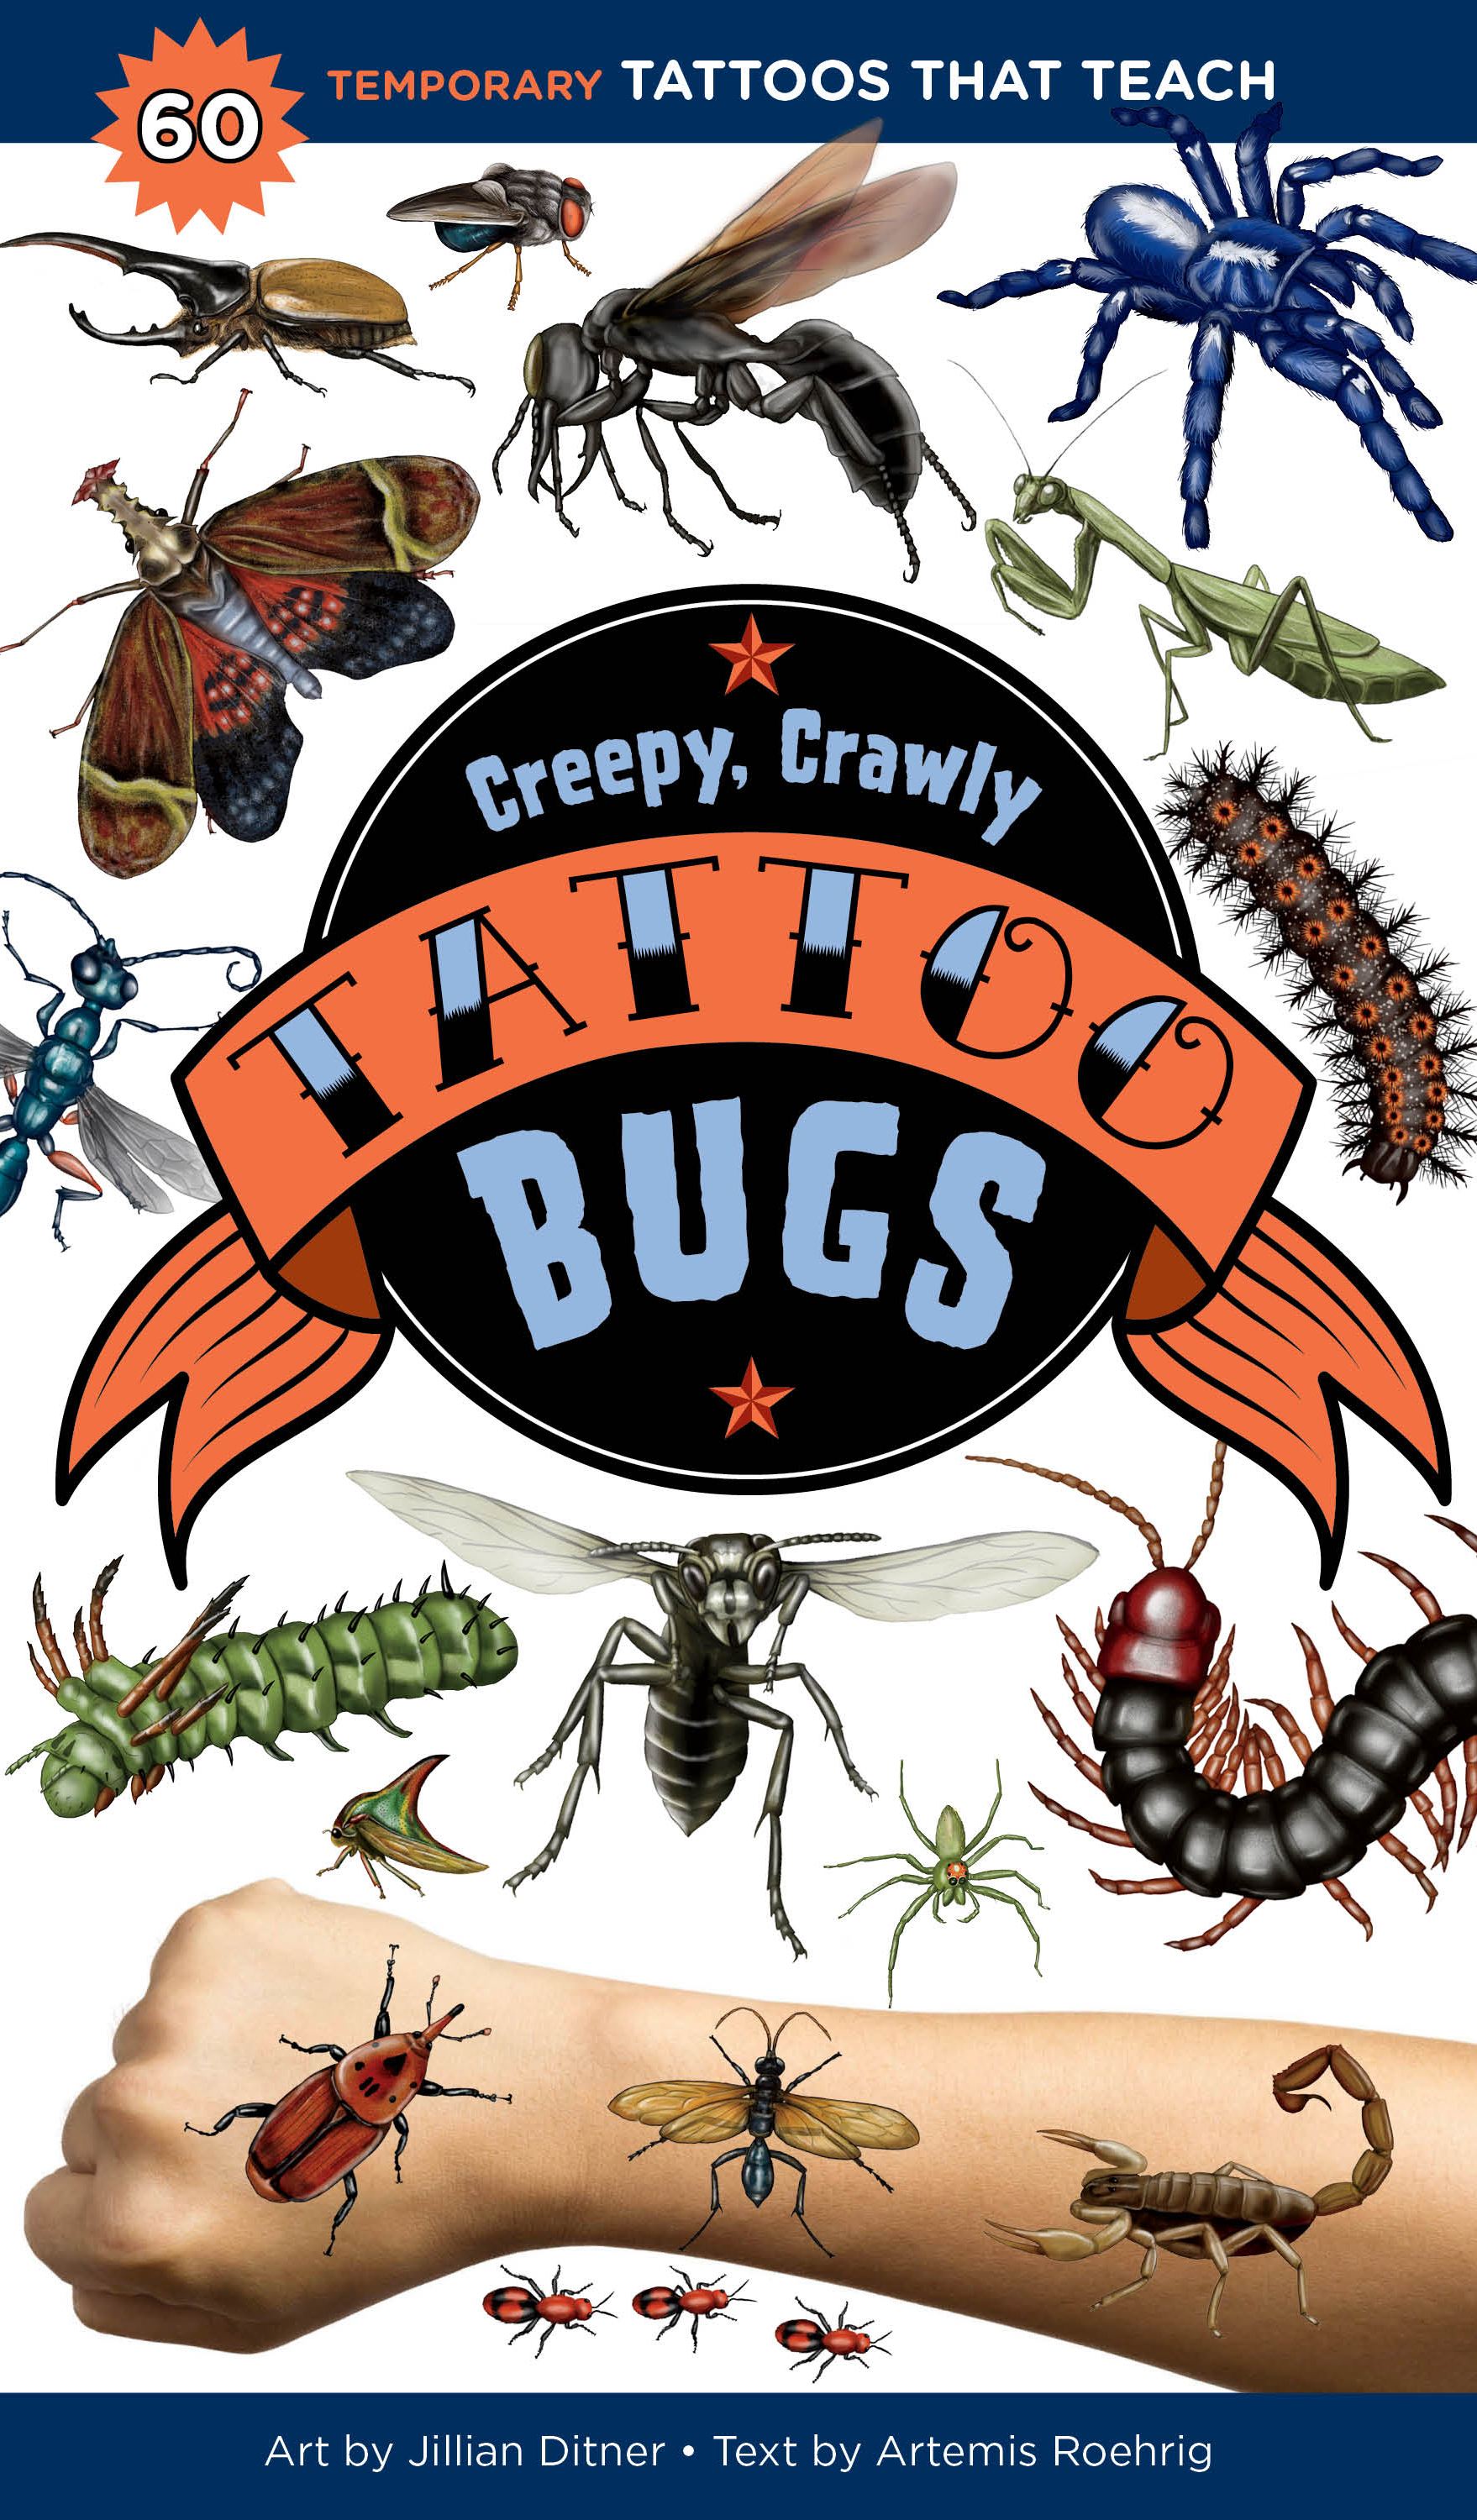 @Jillian Ditner Illustration Creepy, Crawly Tattoo Bugs